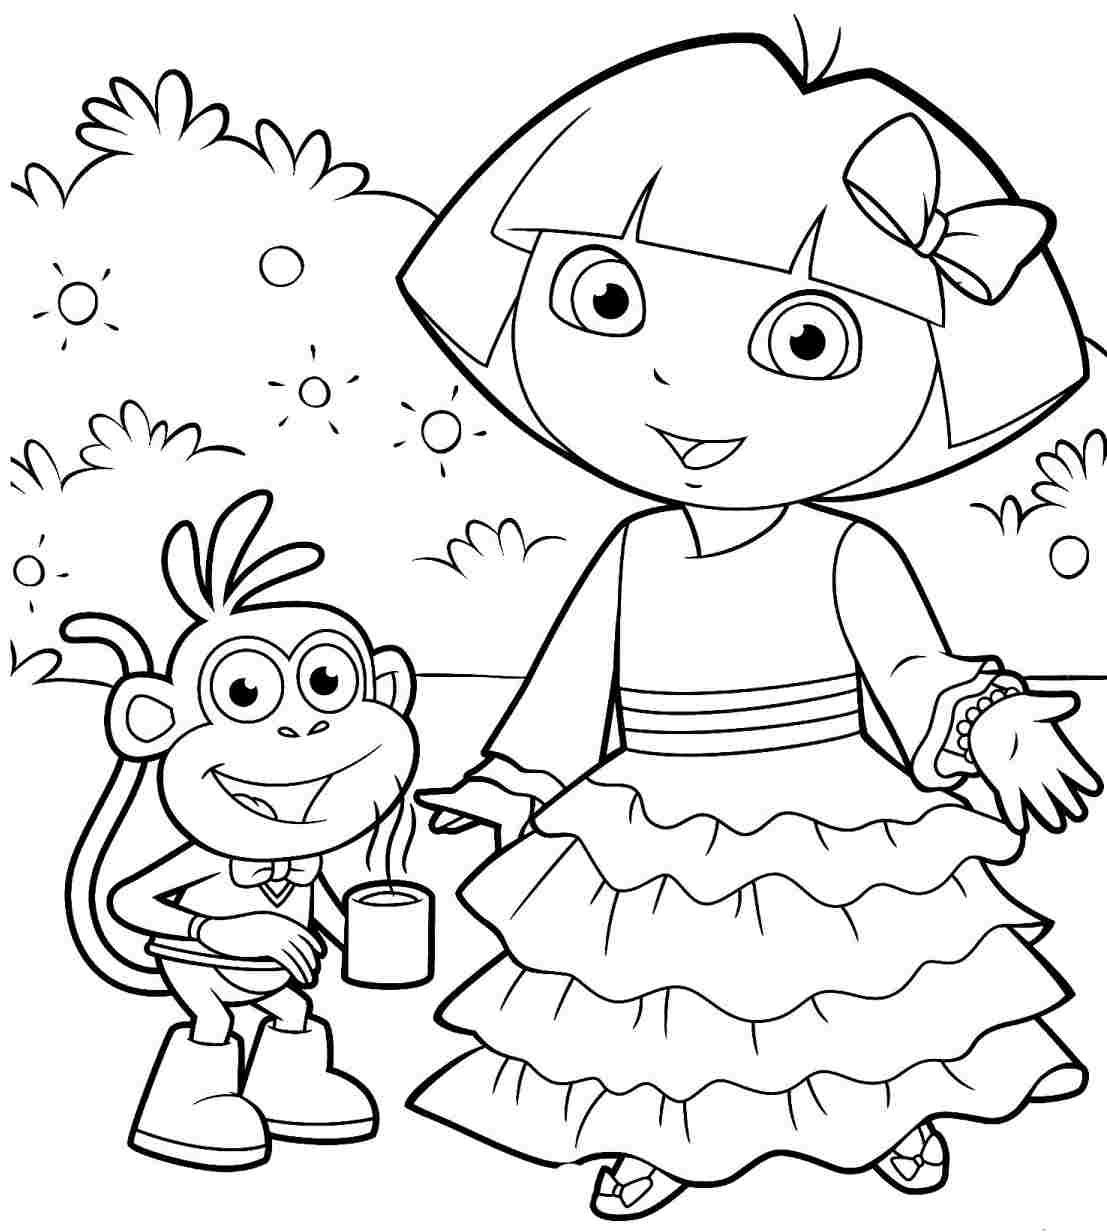 dora the explorer images to print dora coloring pages backpack diego boots swiper print dora print explorer to images the